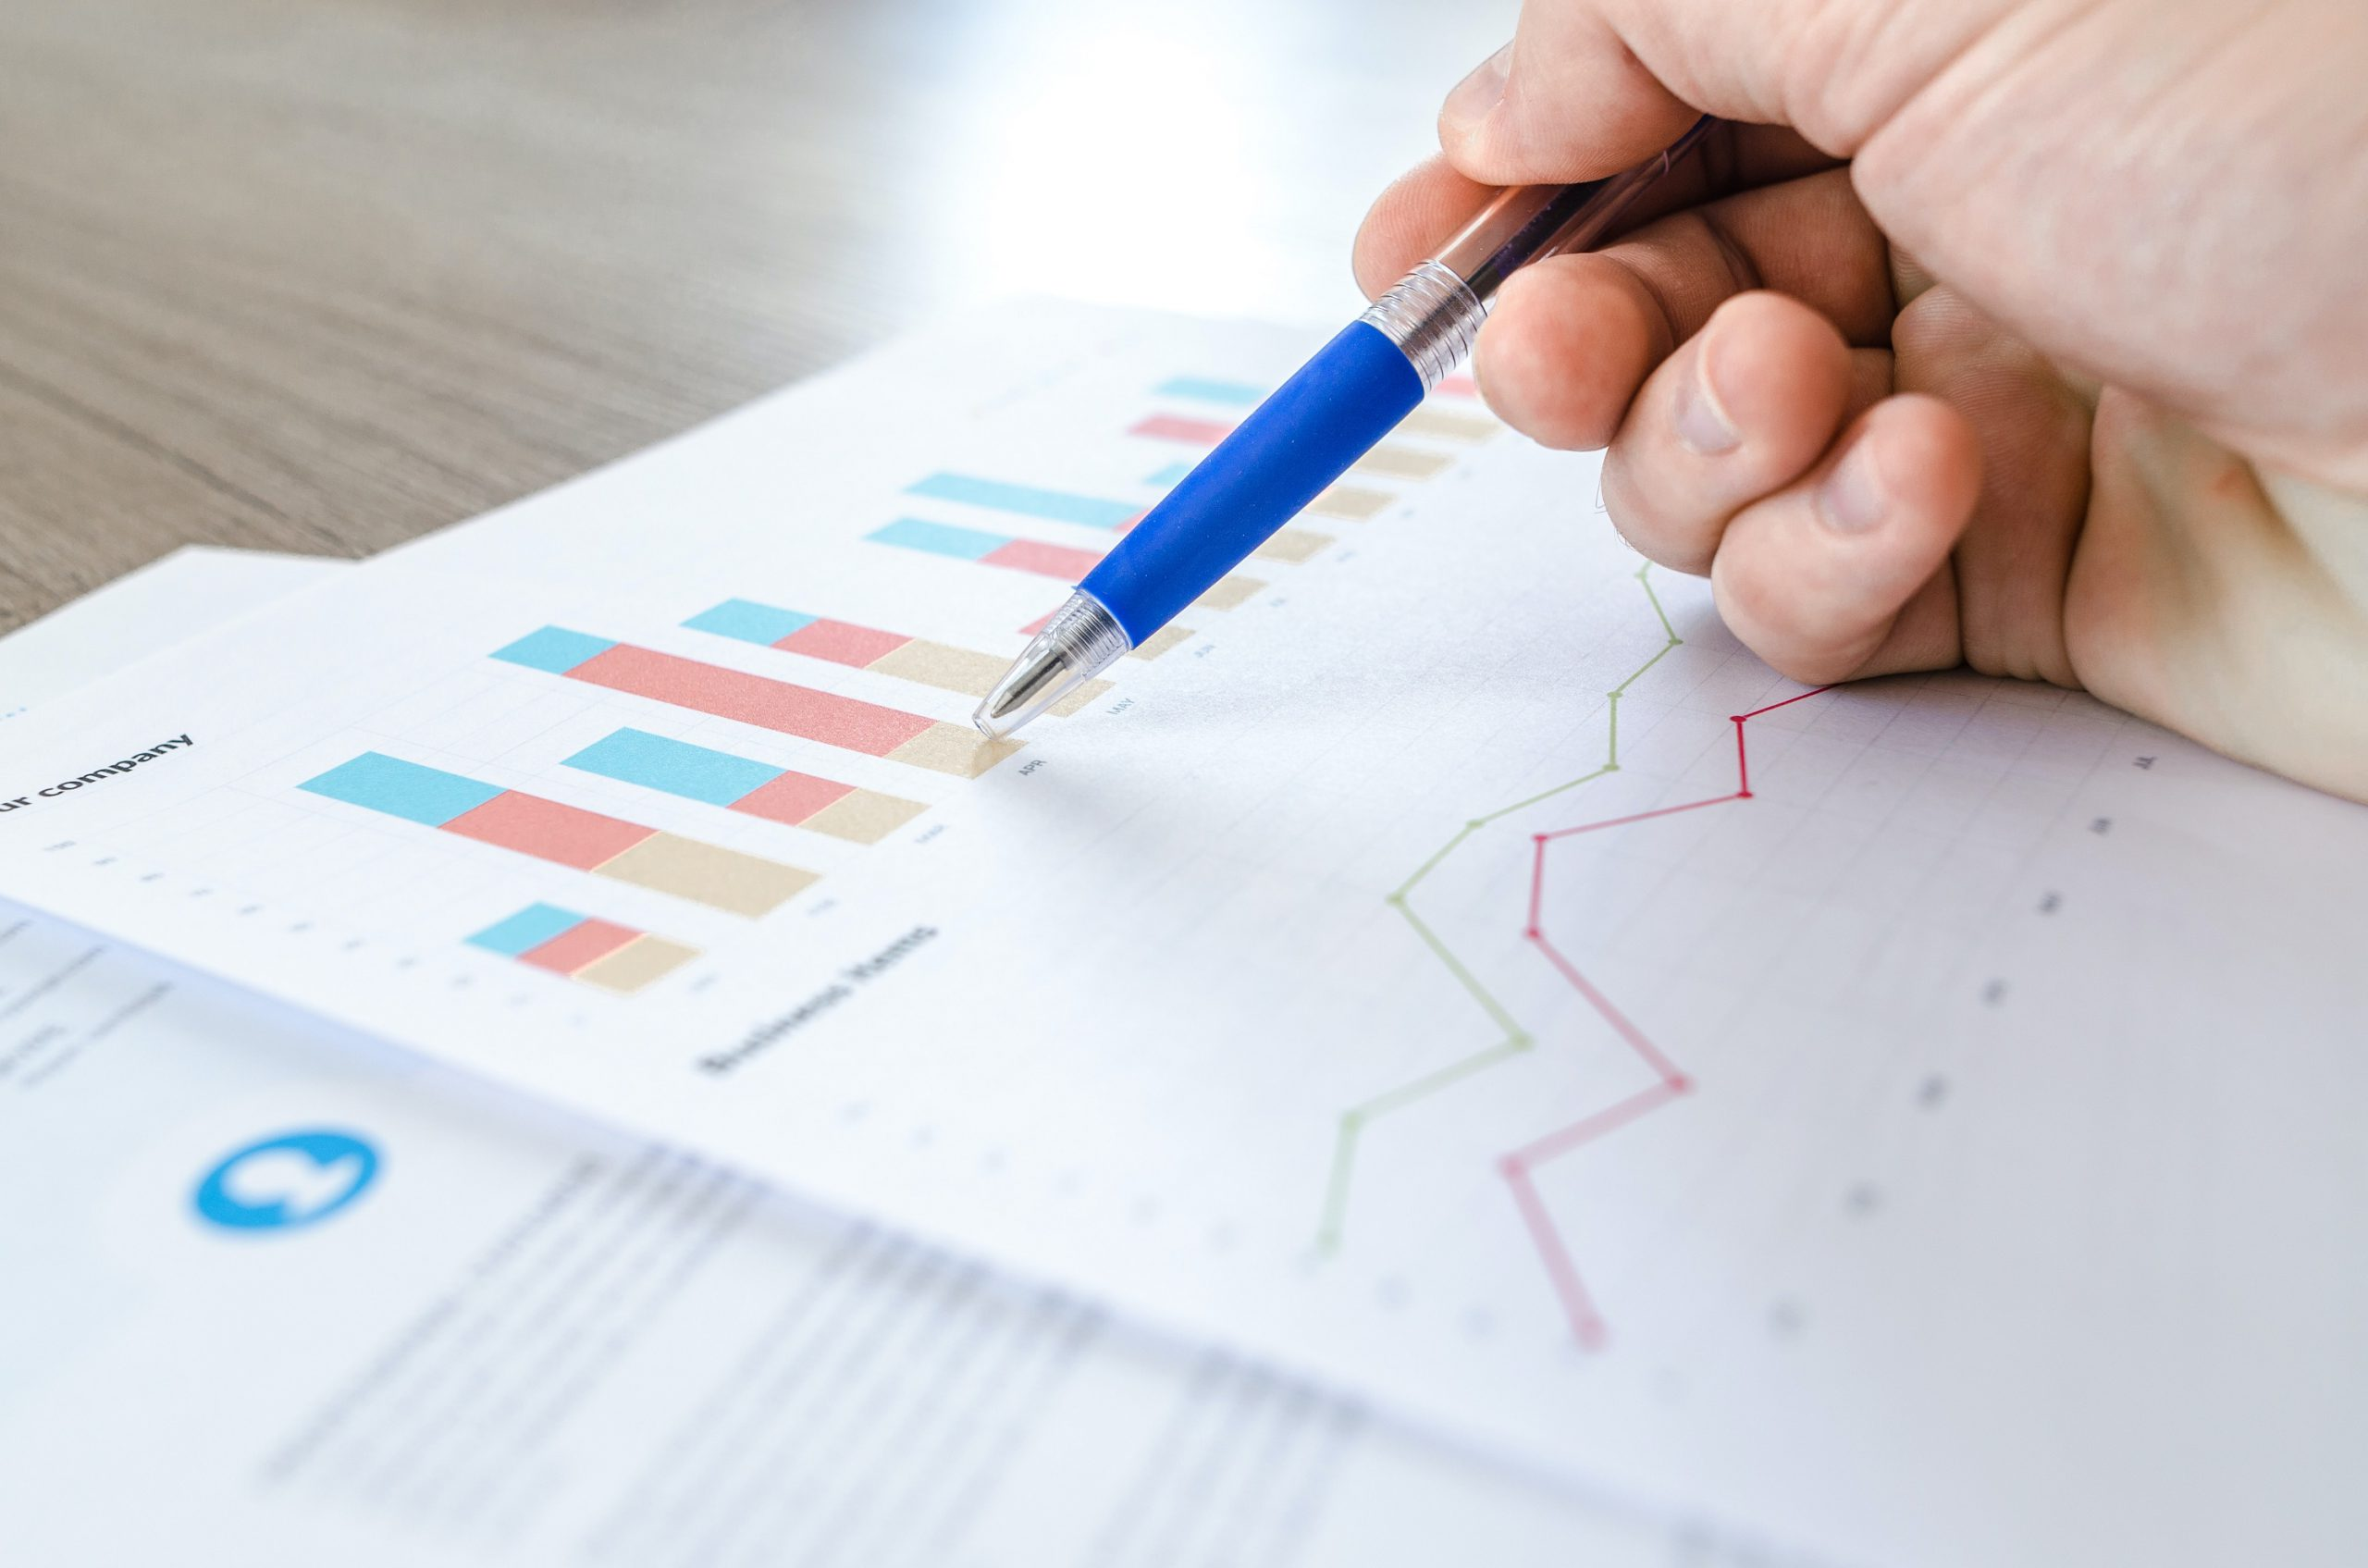 4 Ways You Could Leverage Your Data Analytics (But Aren't)